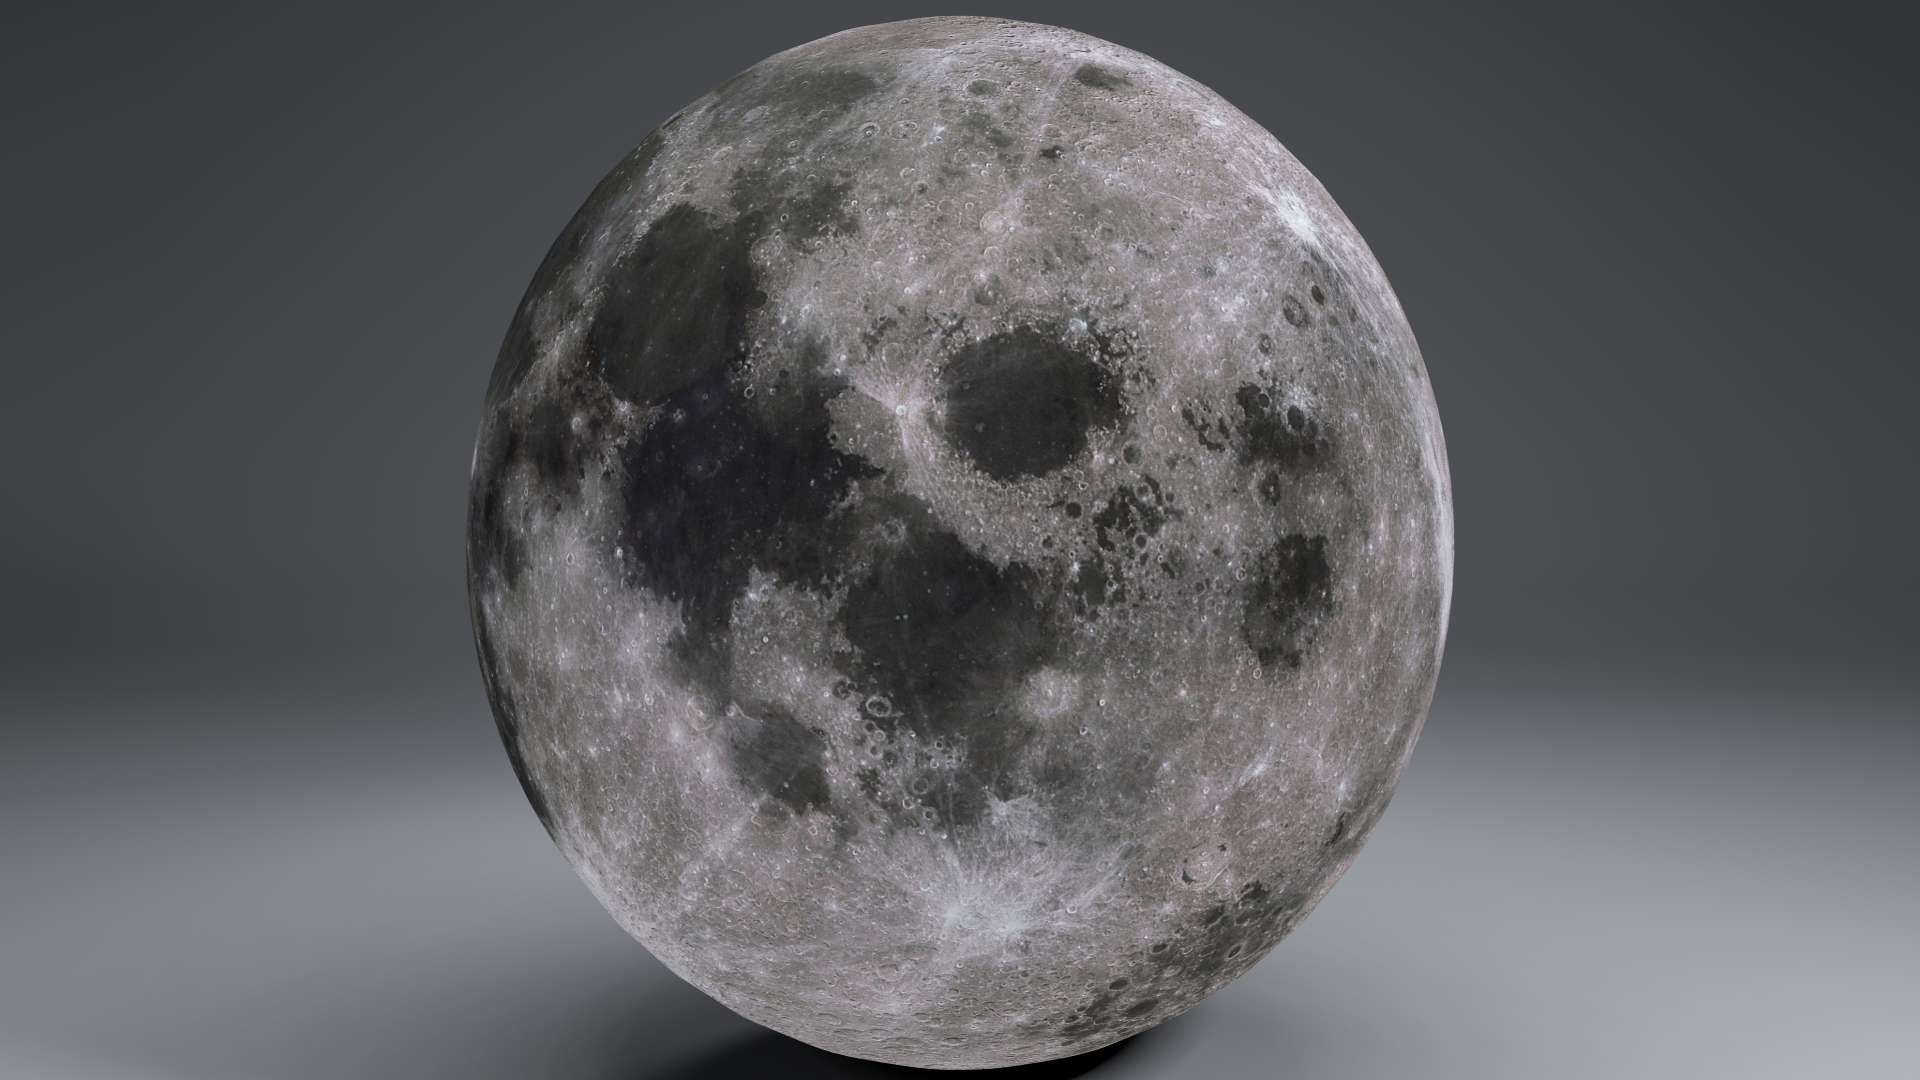 moonglobe 4k 3d model 3ds fbx blend dae obj 221753